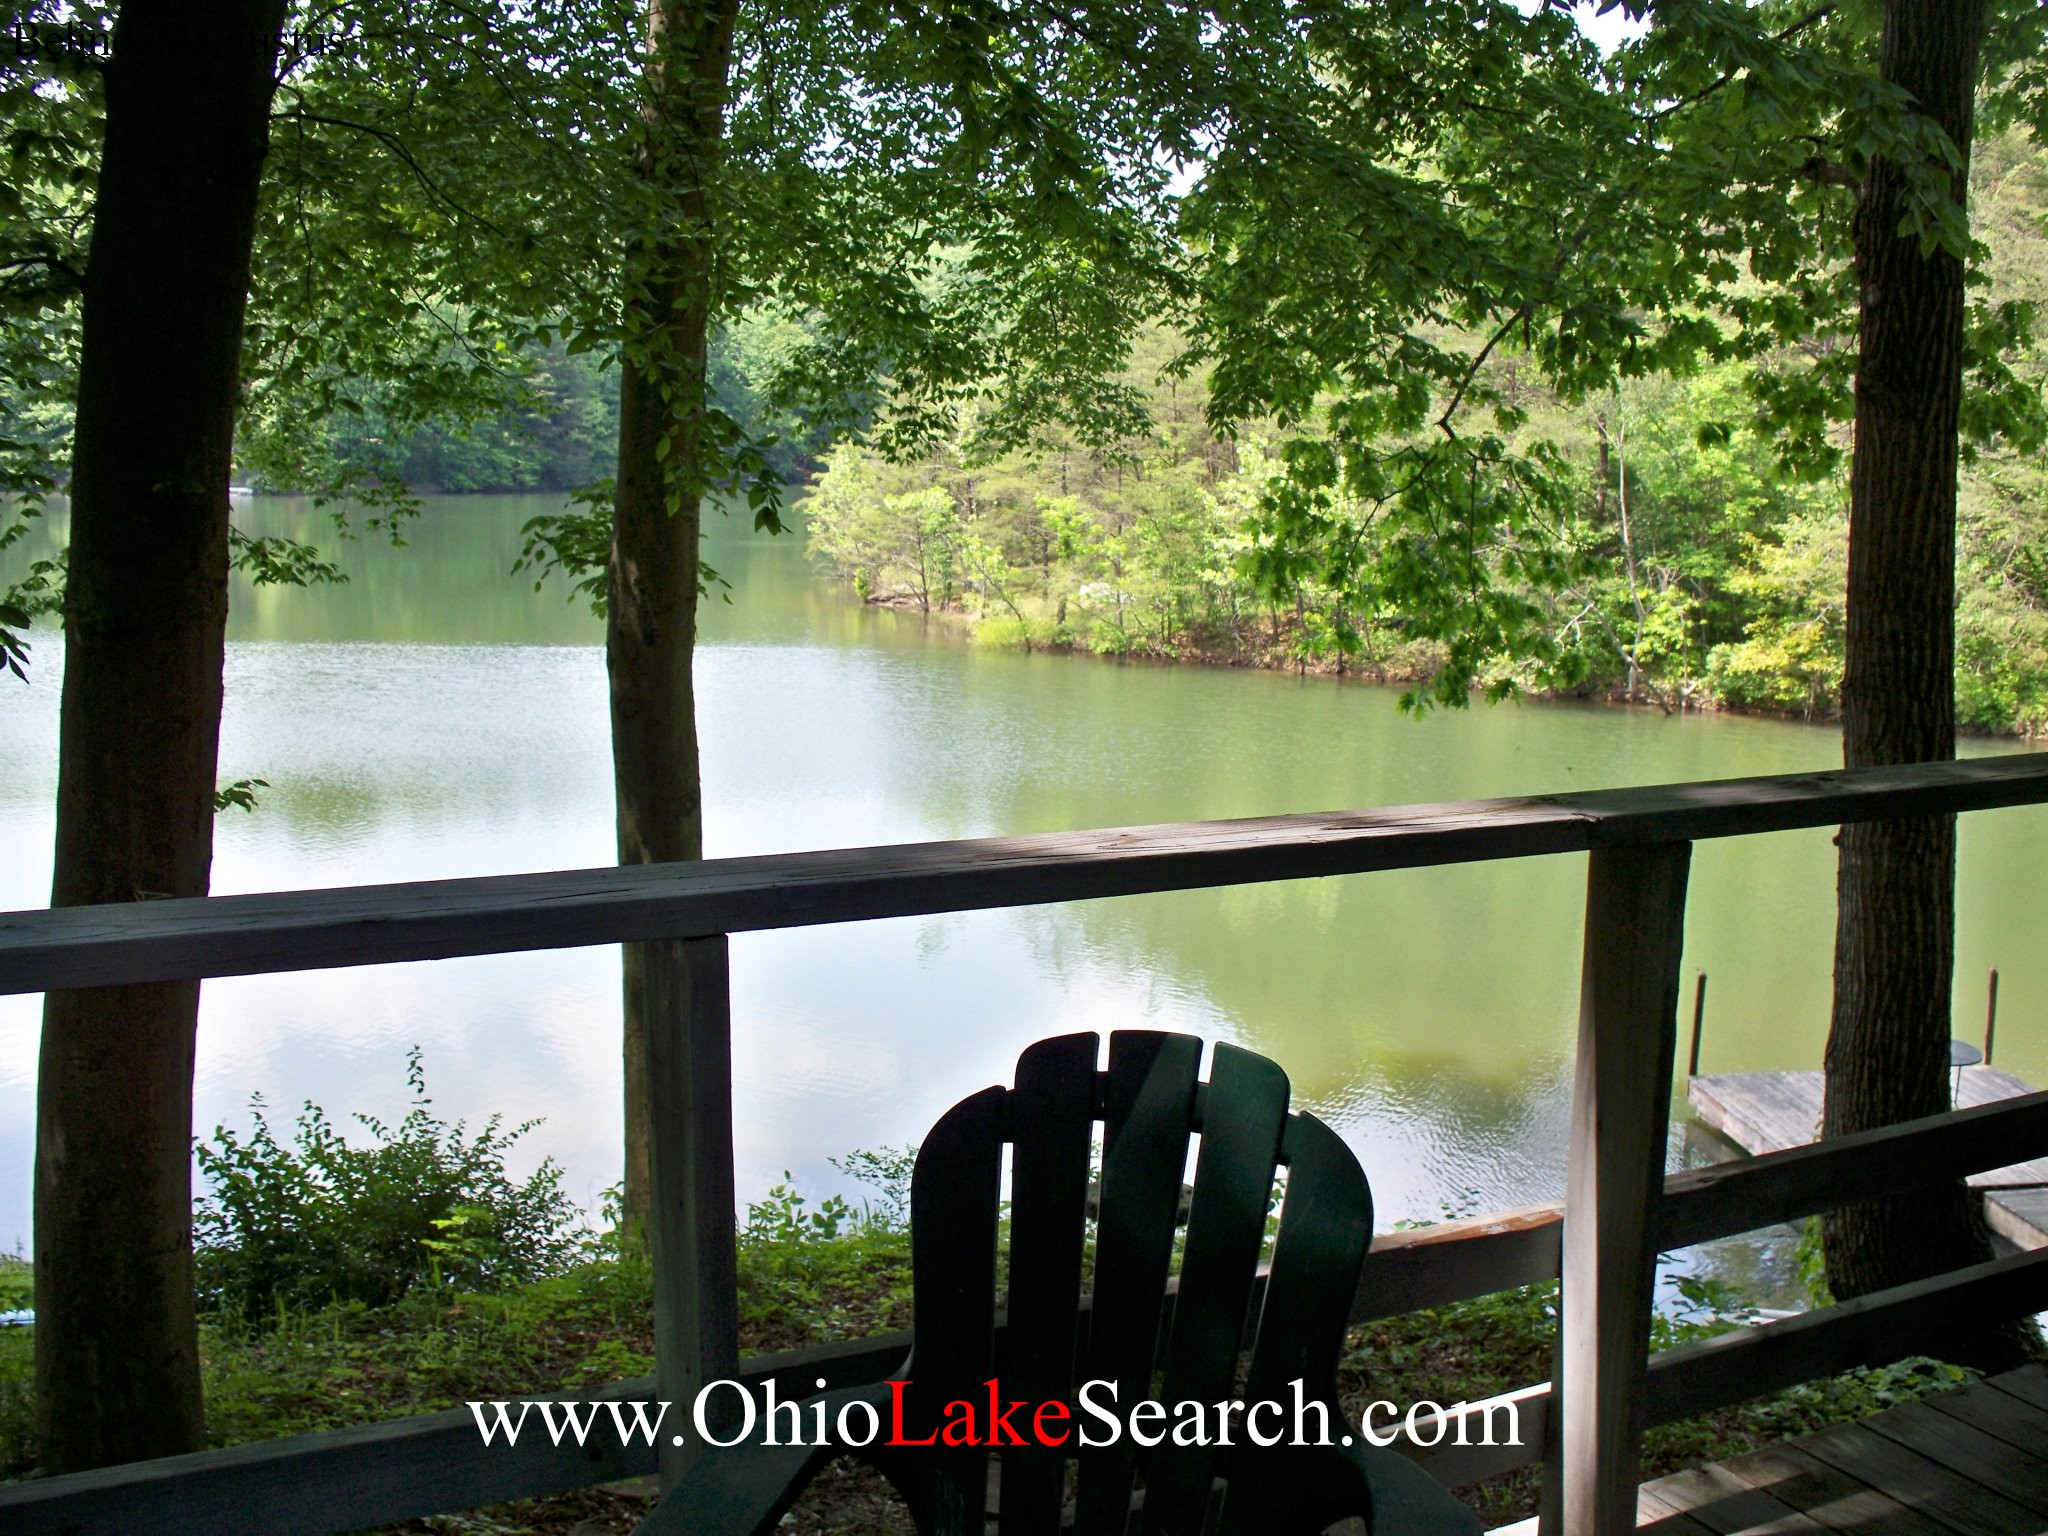 Ohio Lake homes for sale